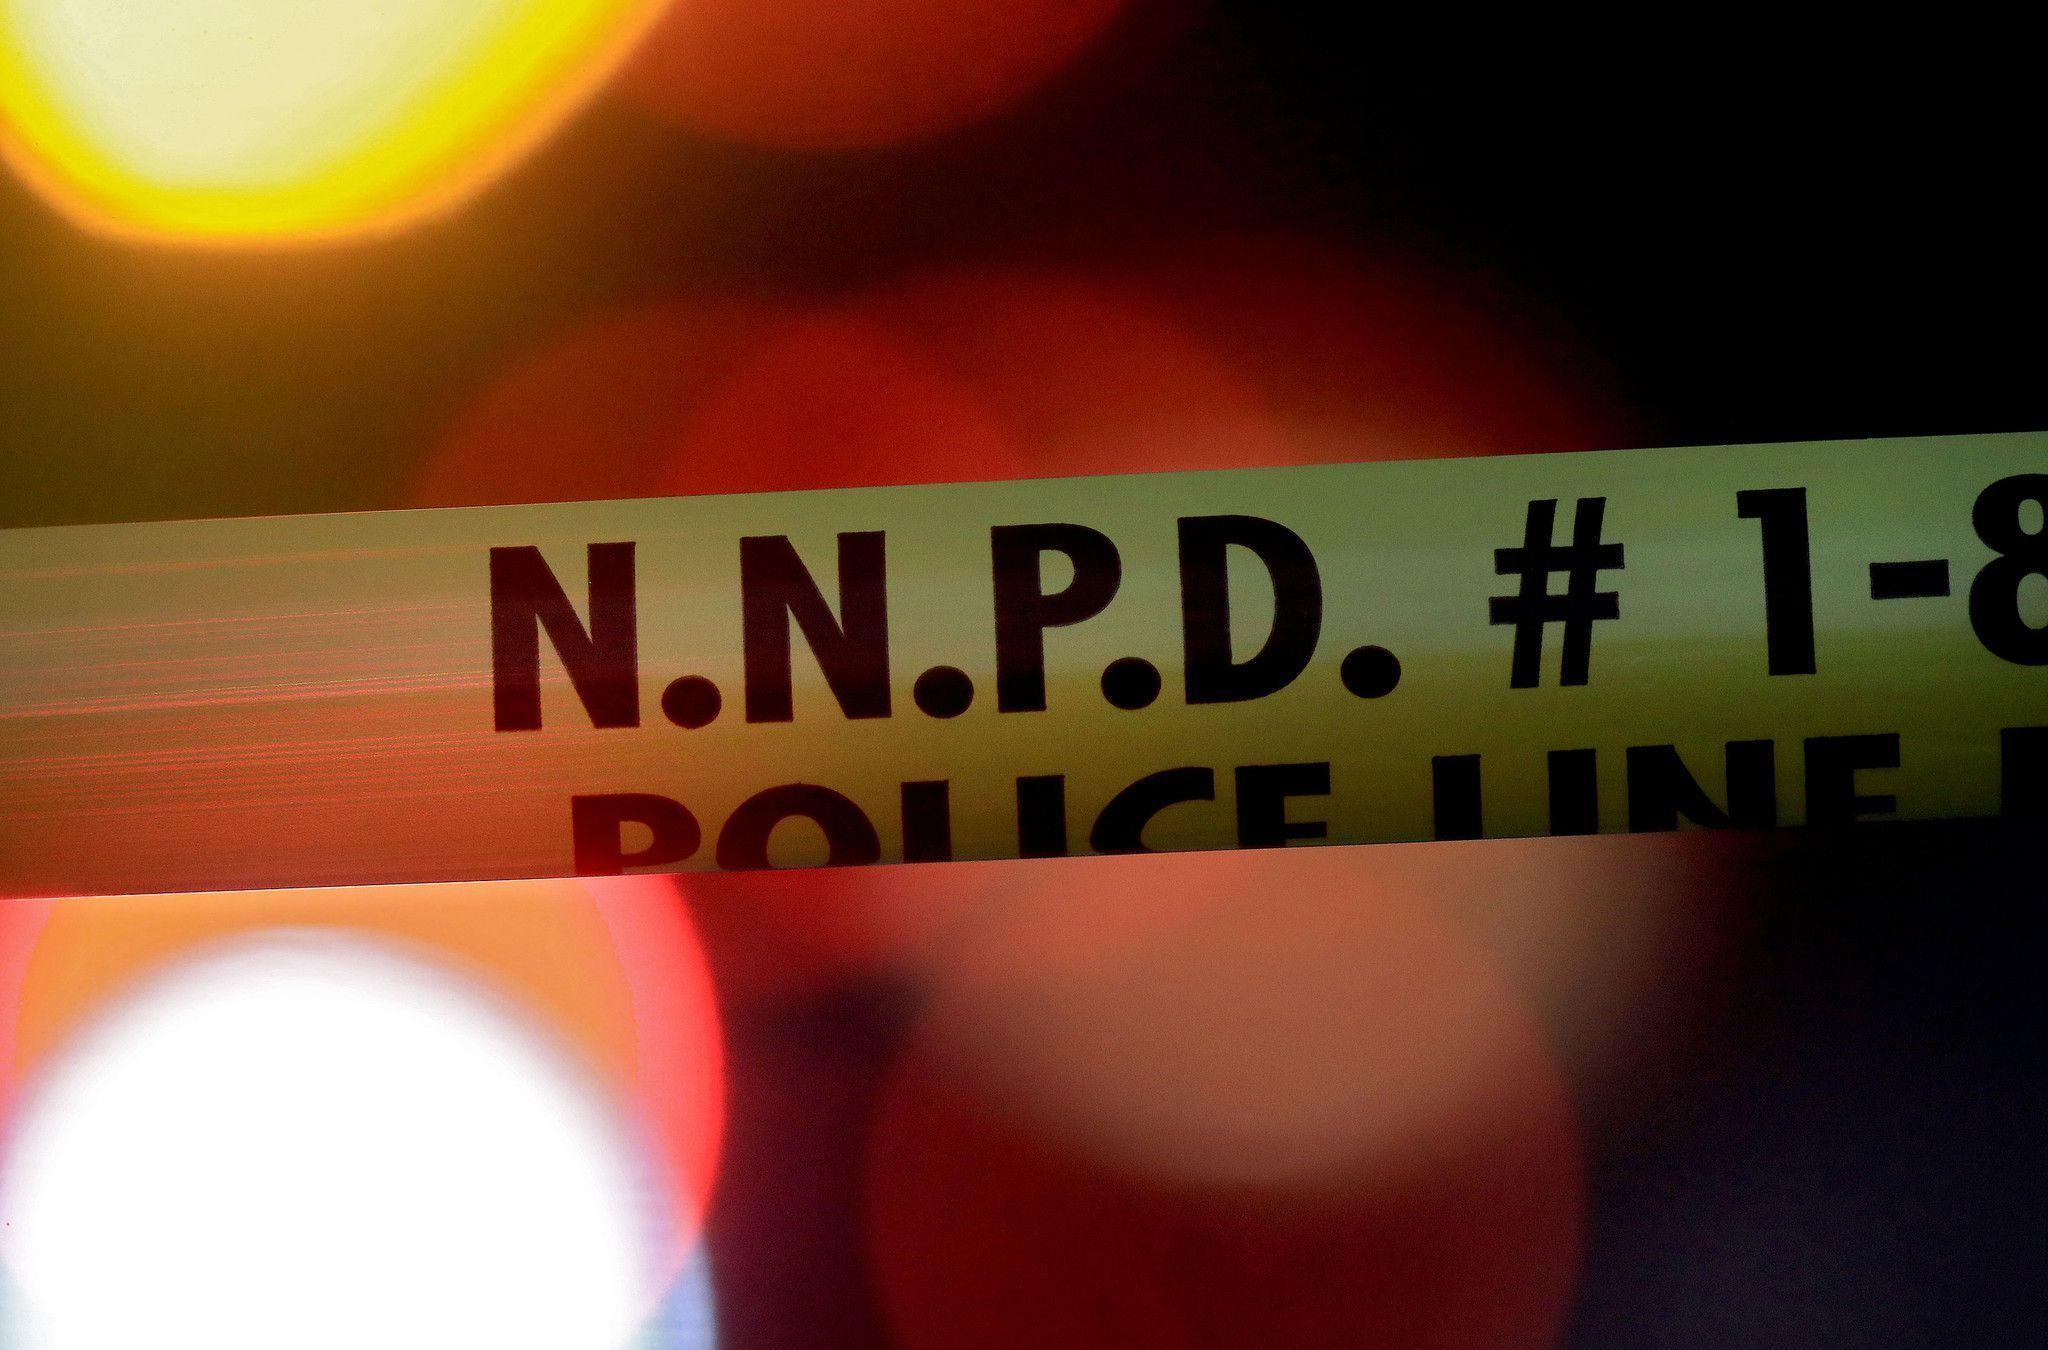 Teenager found with gunshot wound in 7-Eleven parking lot, Newport News police say